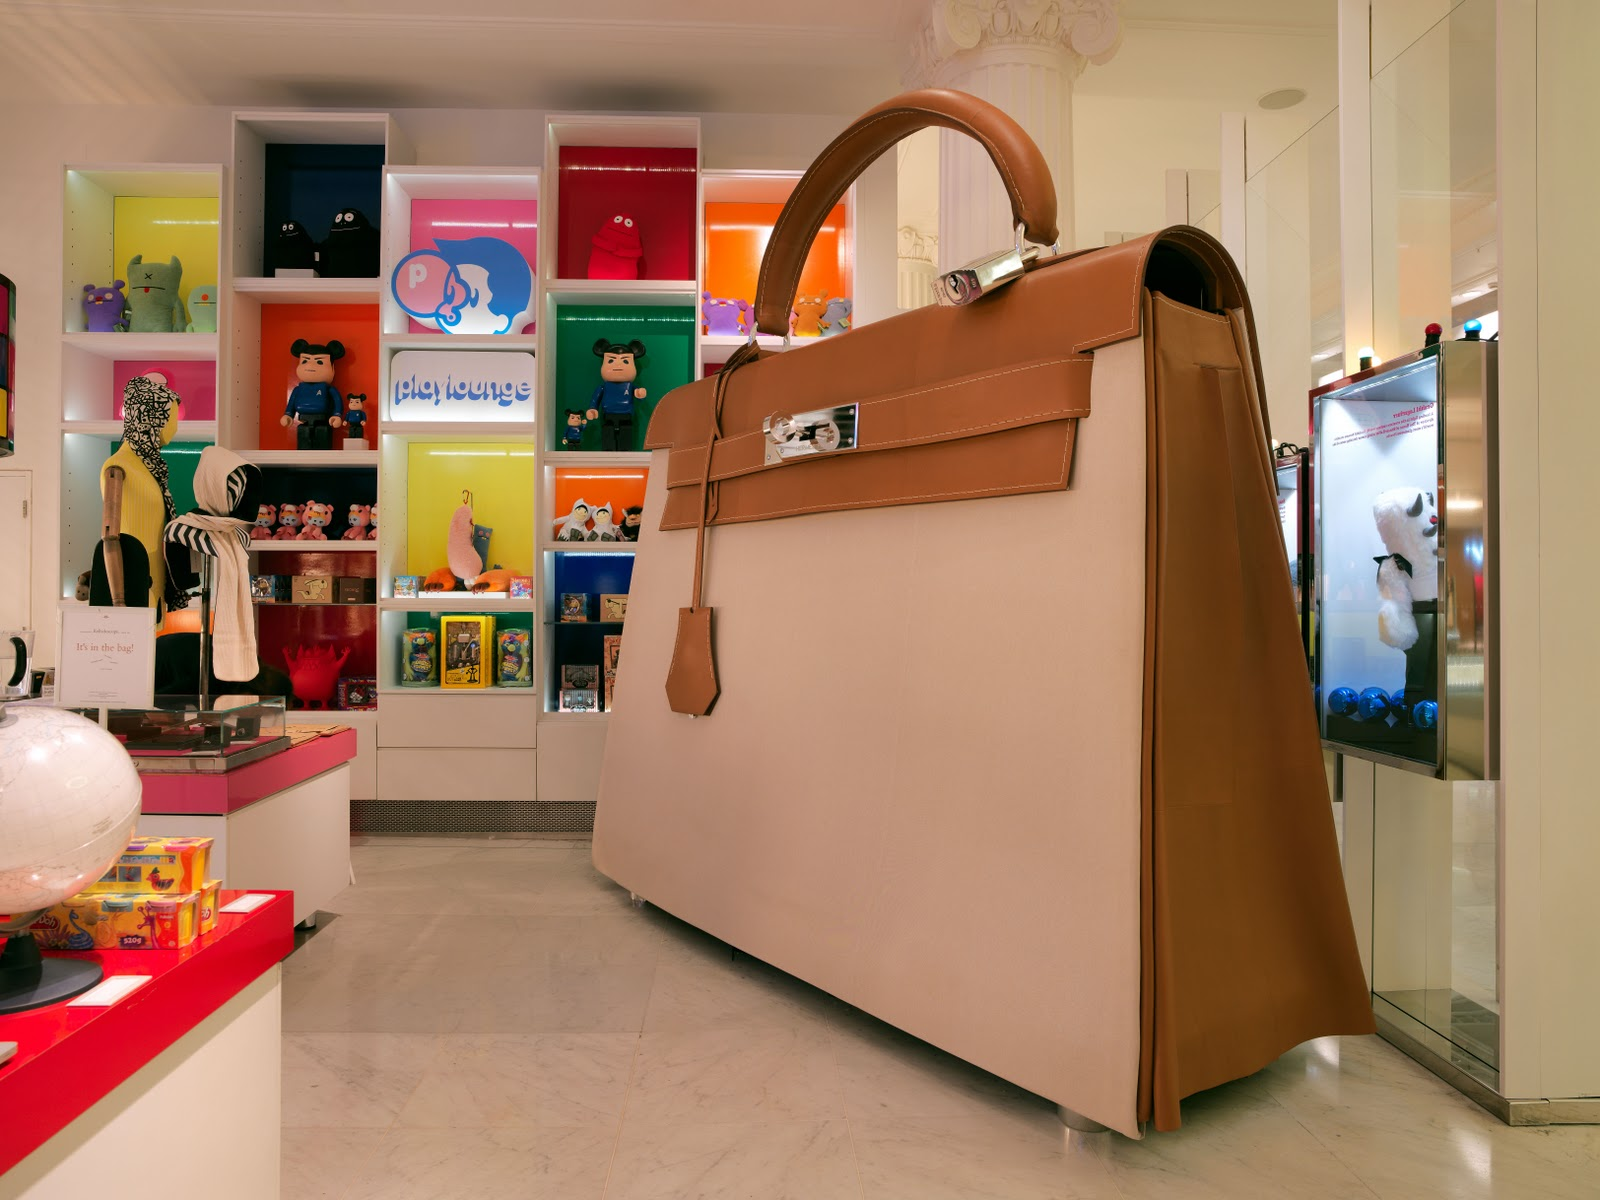 Walk Into A Hermes Bag At Selfridges And Experience The Luxury